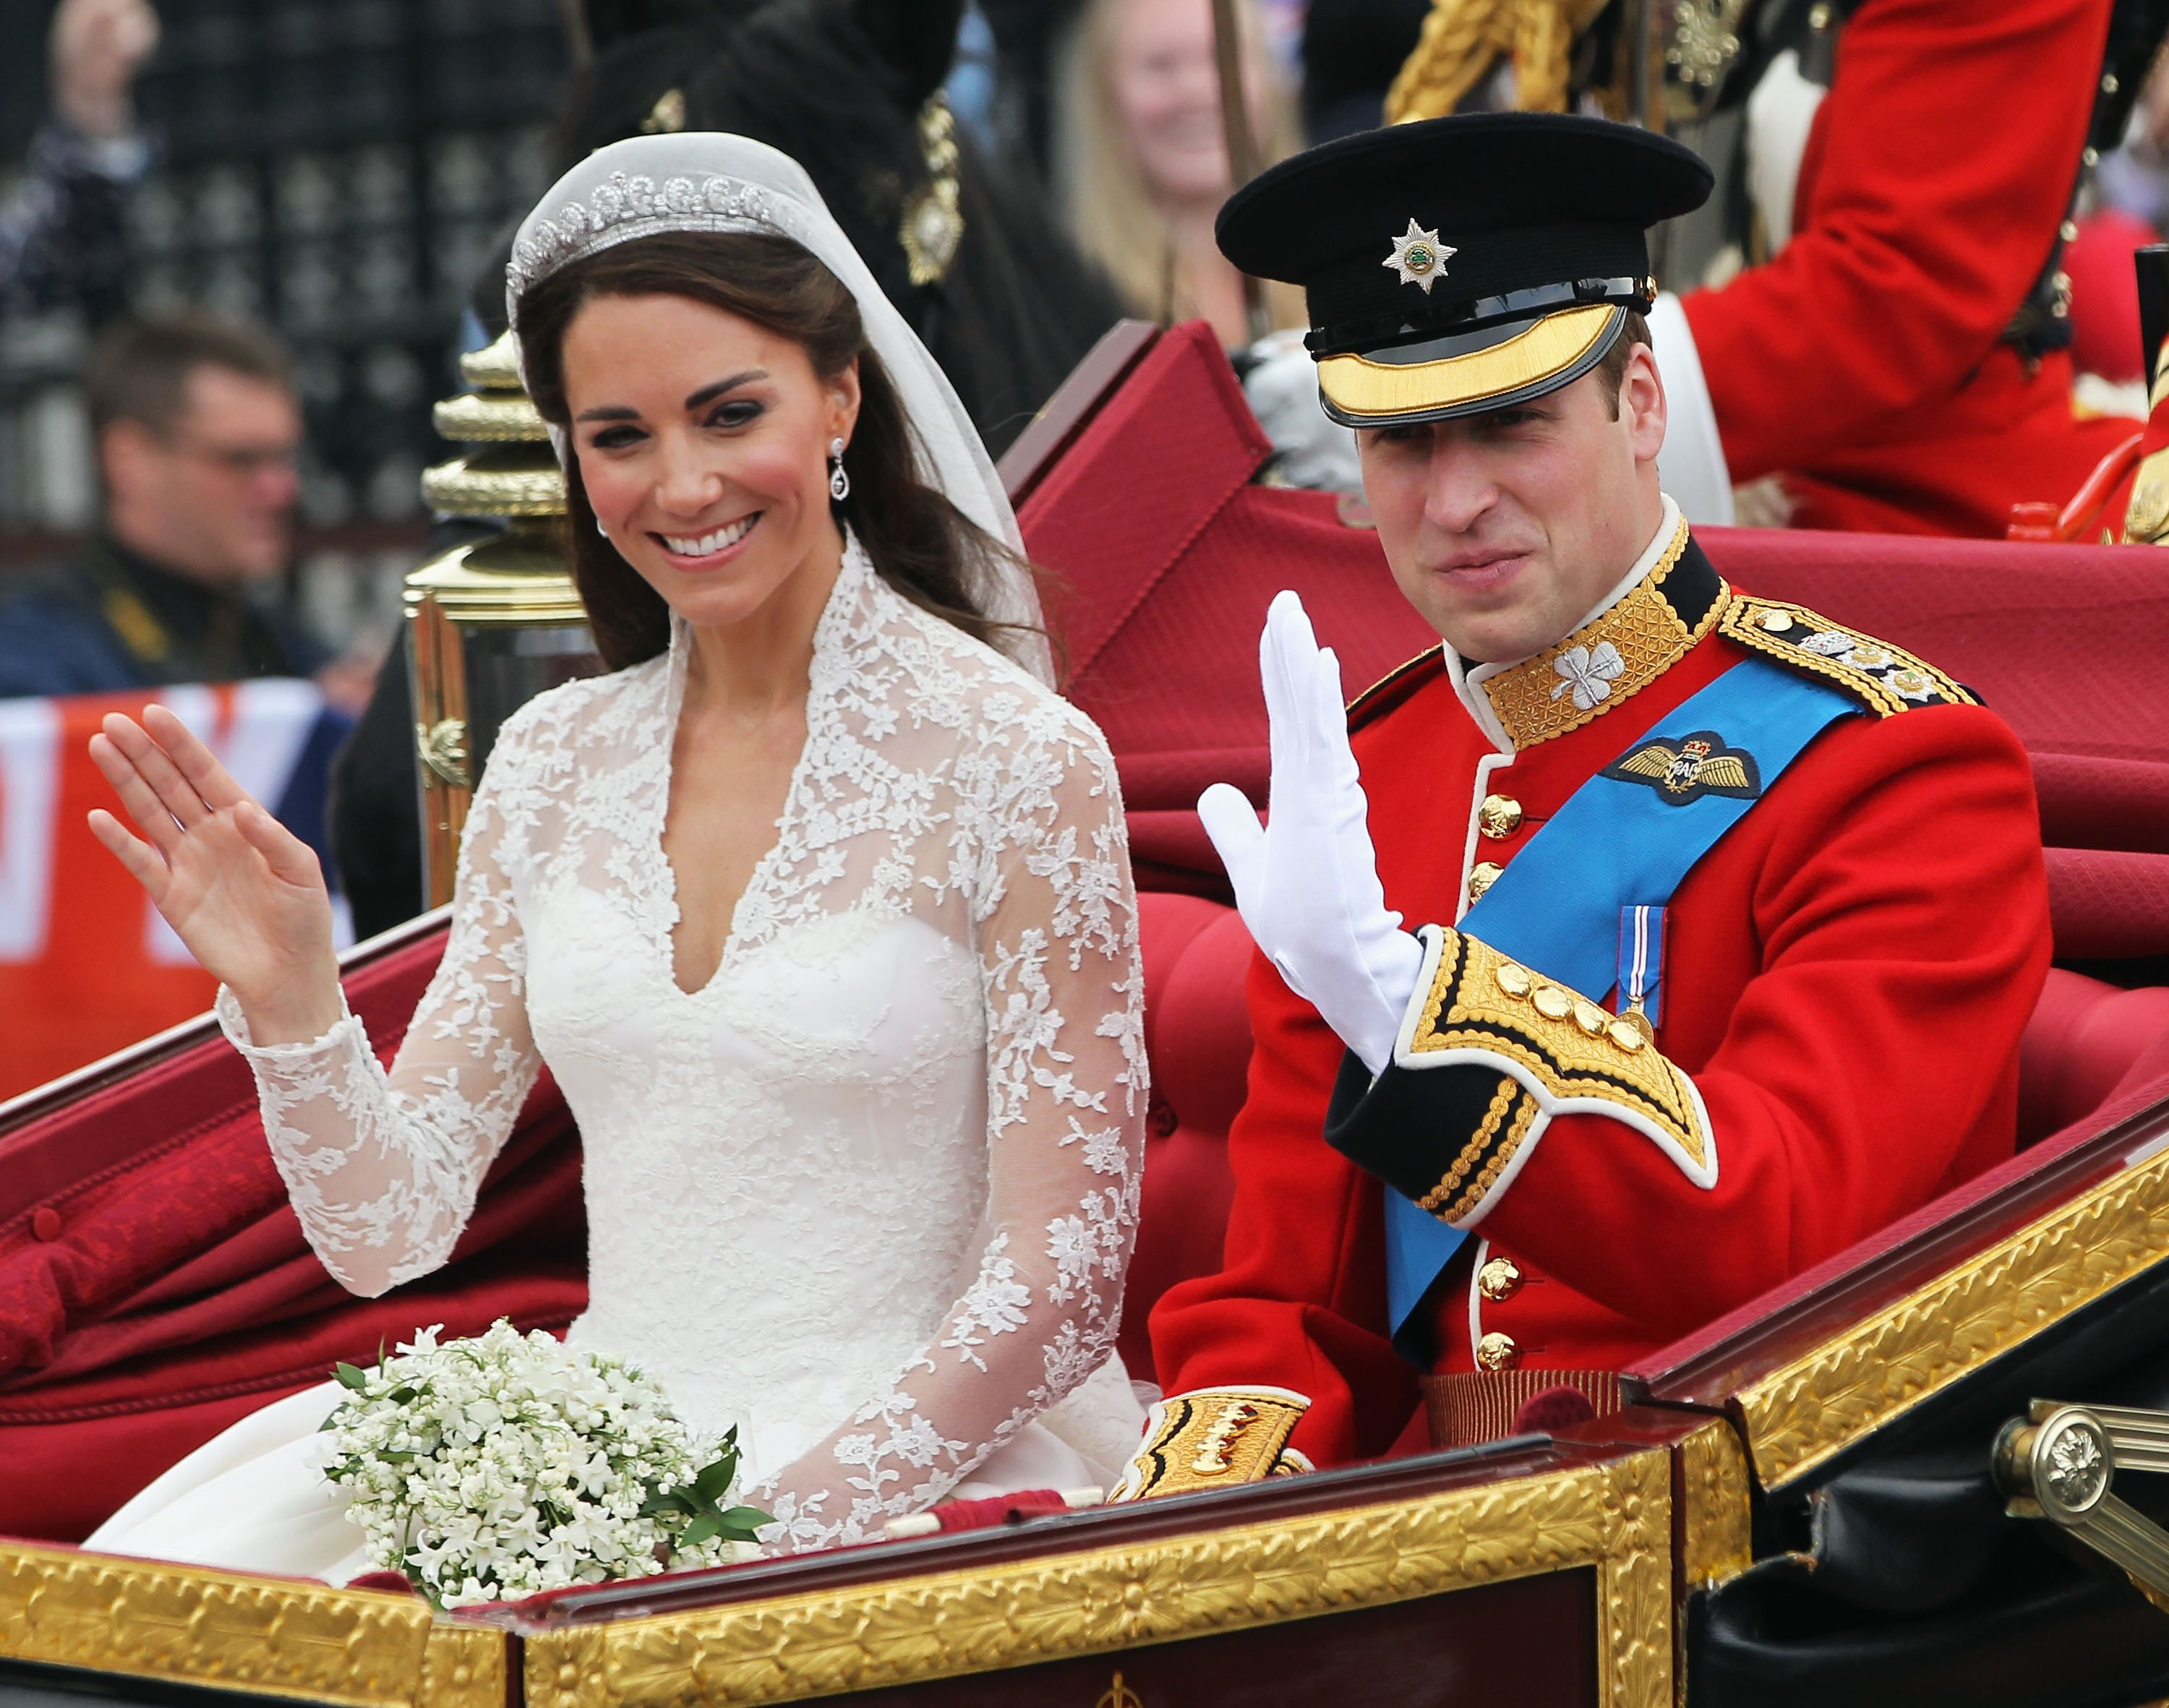 Kate Middleton and Prince William pictured after their wedding ceremony at Westminster Abbey, 2011, London, England. | Photo: Getty Images